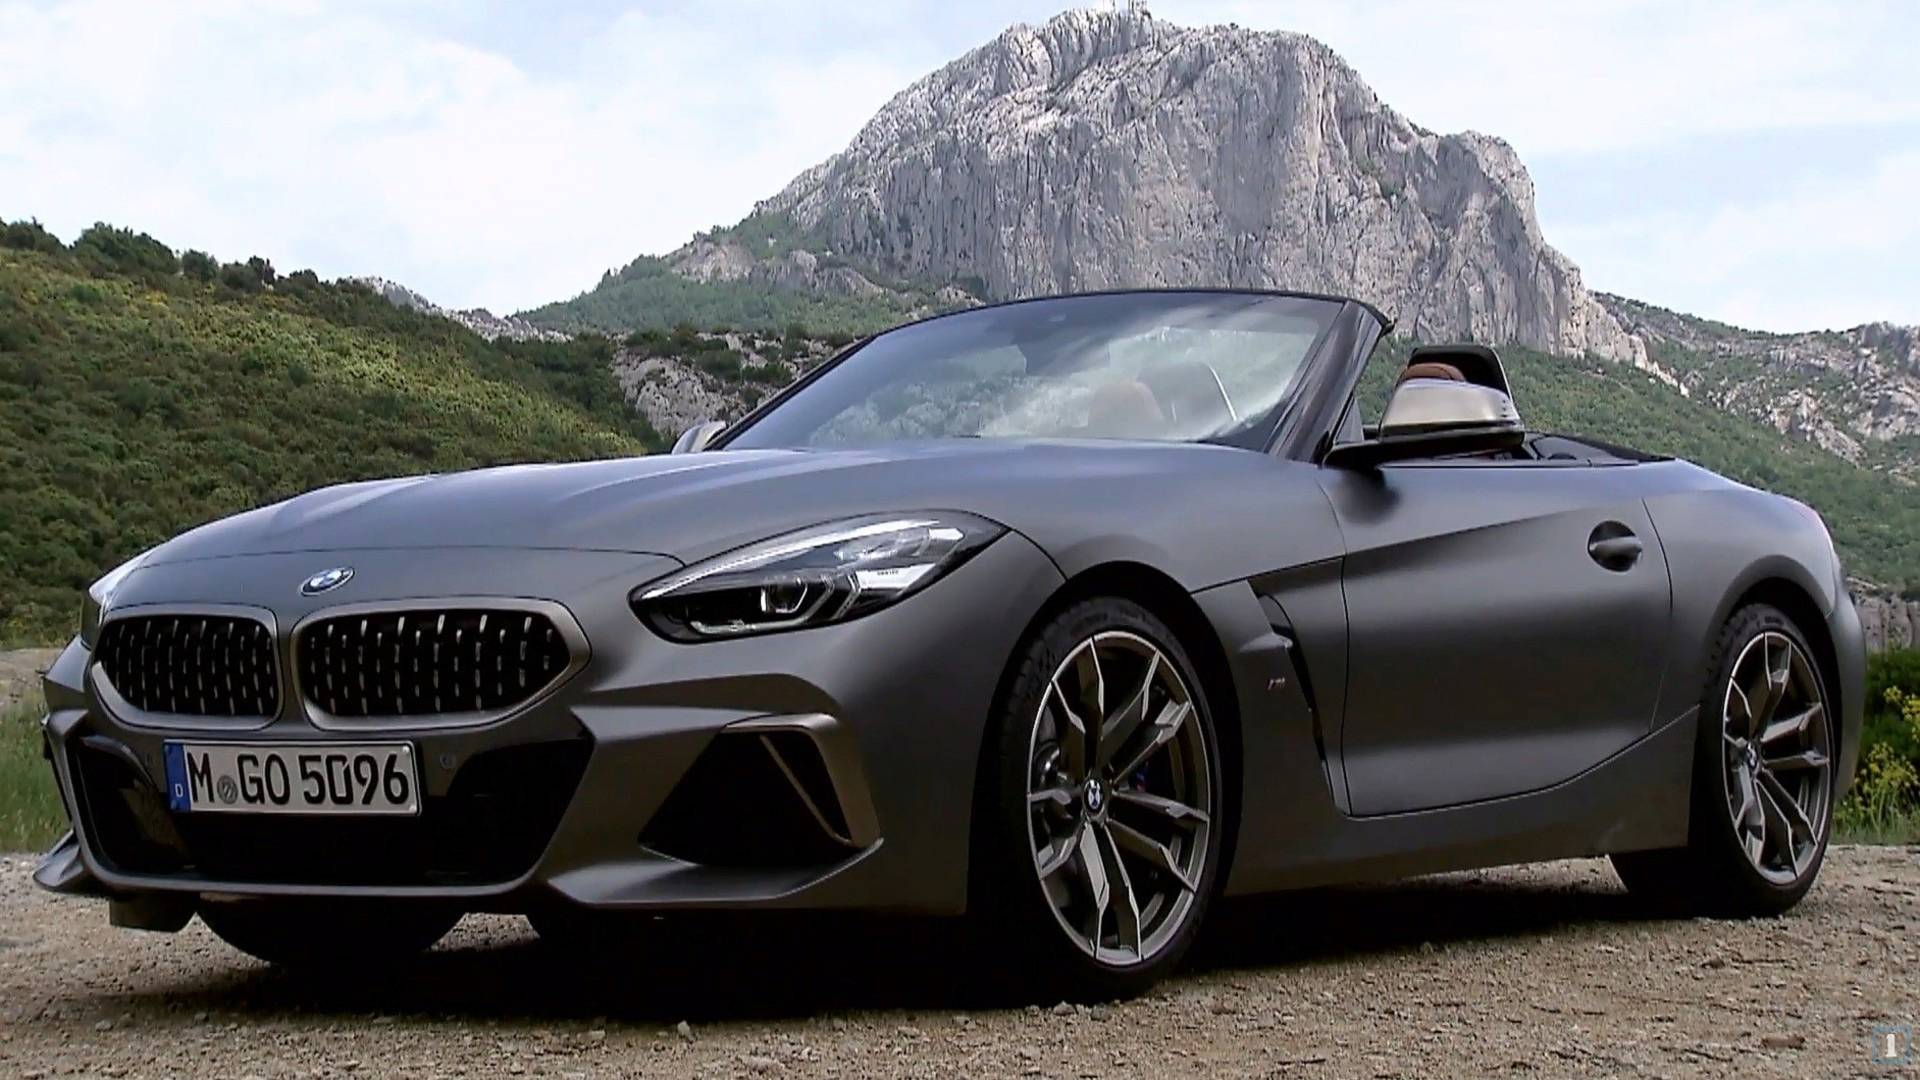 Bmw Finally Drops Promo Videos For All New Z4 Roadster